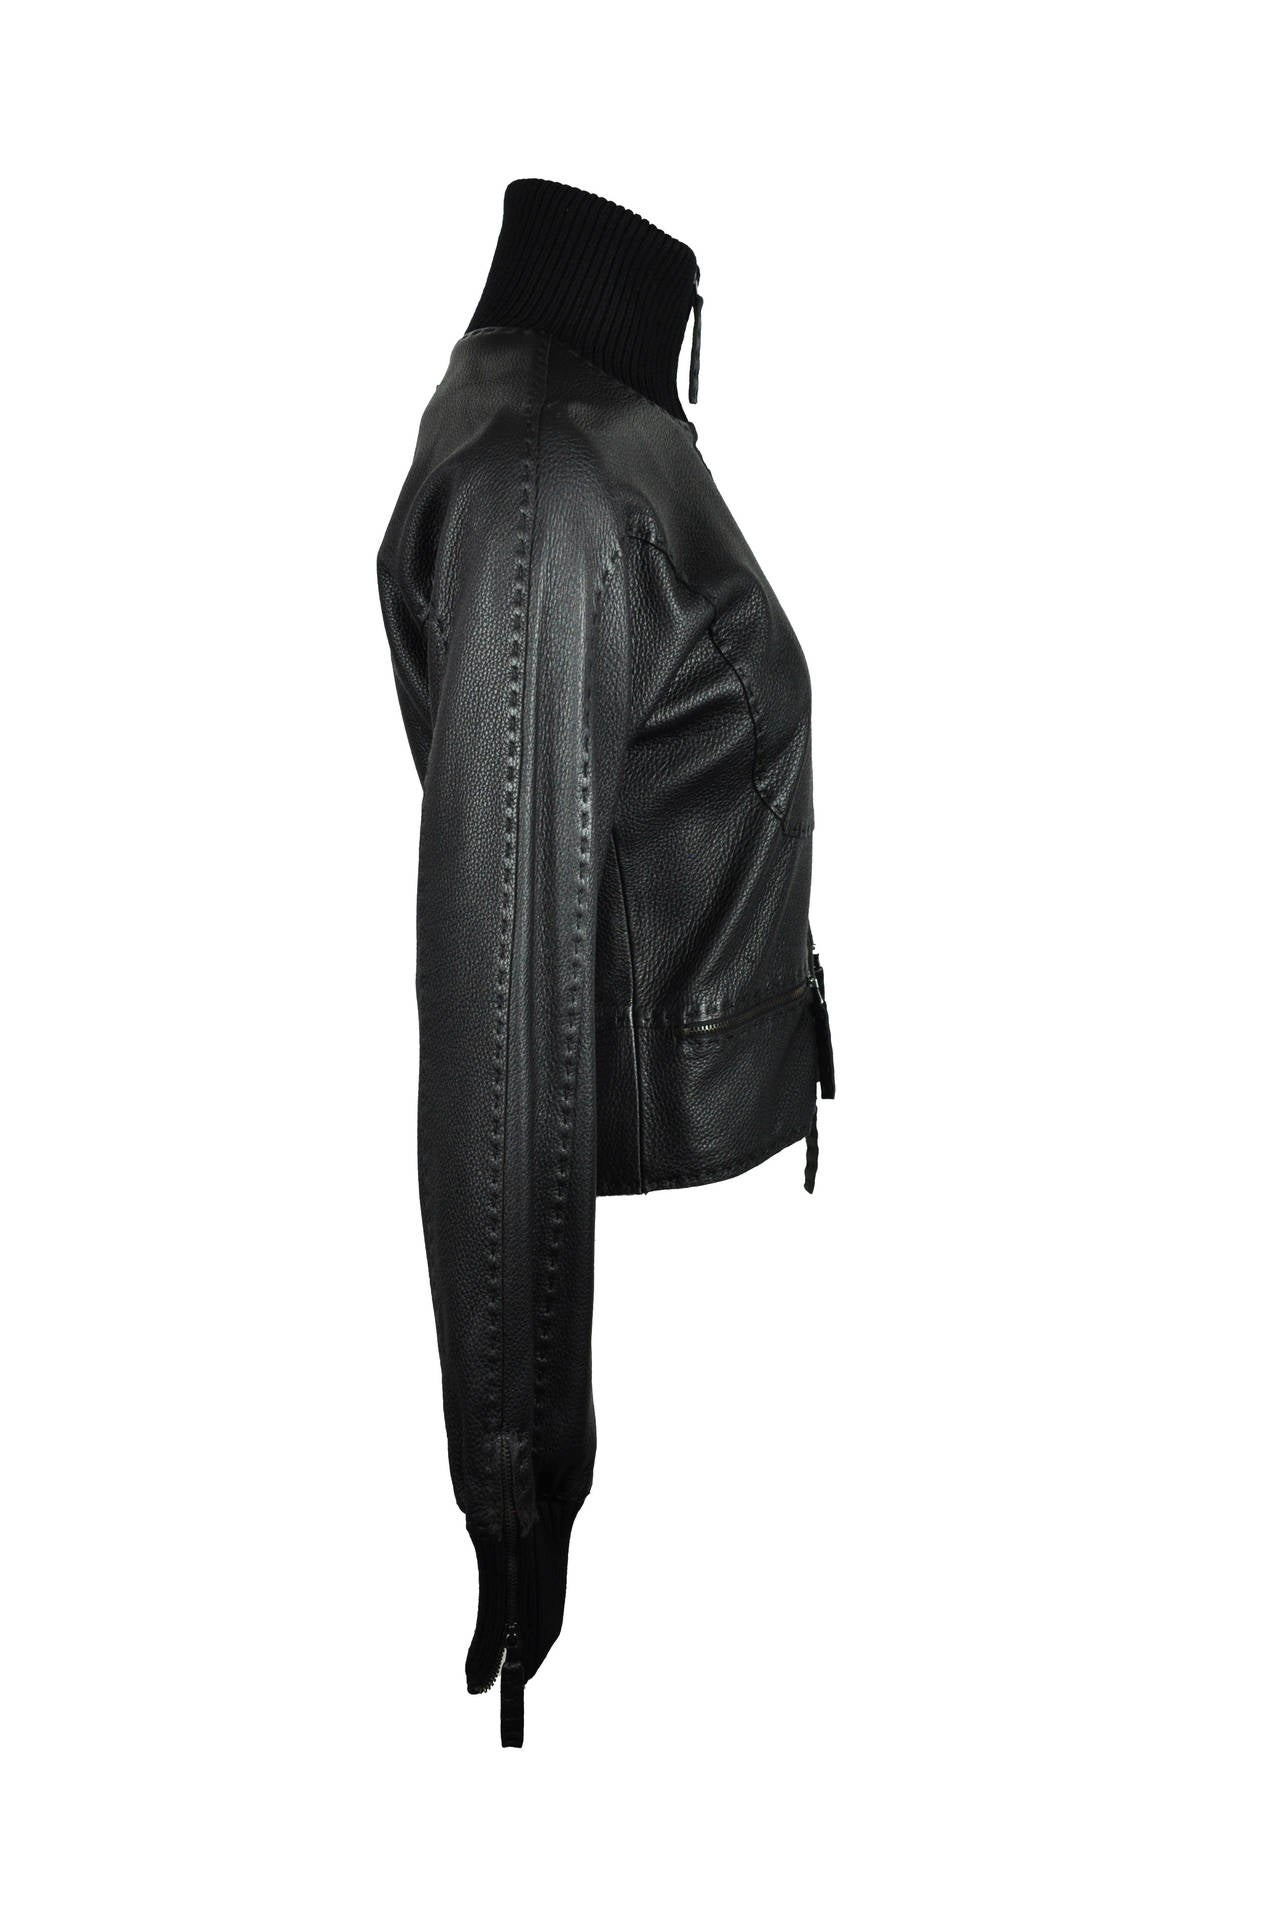 Jean Paul Gaultier Black Deer Leather Bomber Jacket 6